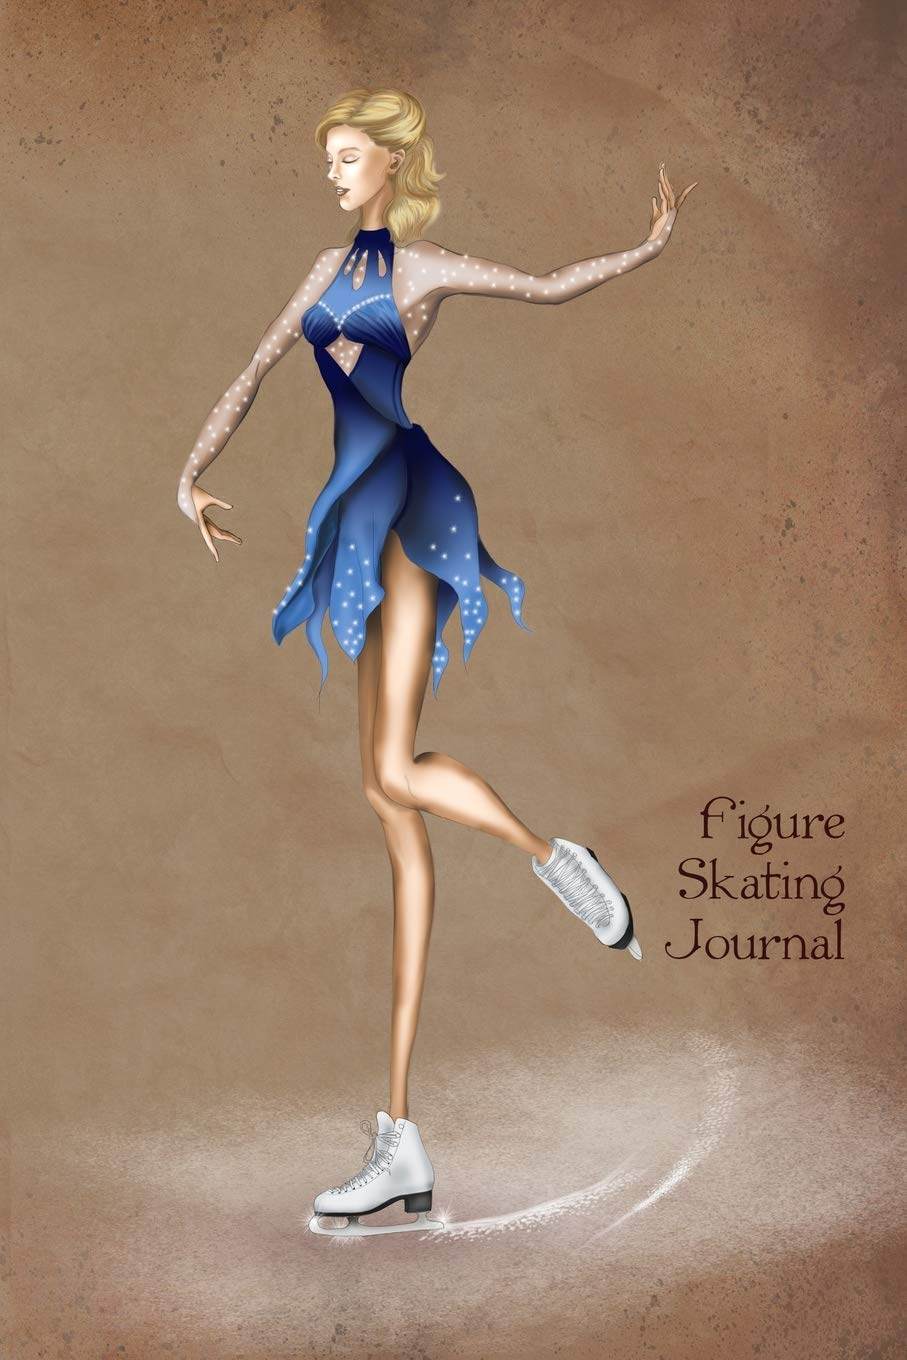 Figure Skating Journal Vintage Style Fashion Illustration Soft Cover Journal Diary Notebook With Lined Pages Journals Vintage Fashion 9781725674738 Amazon Com Books